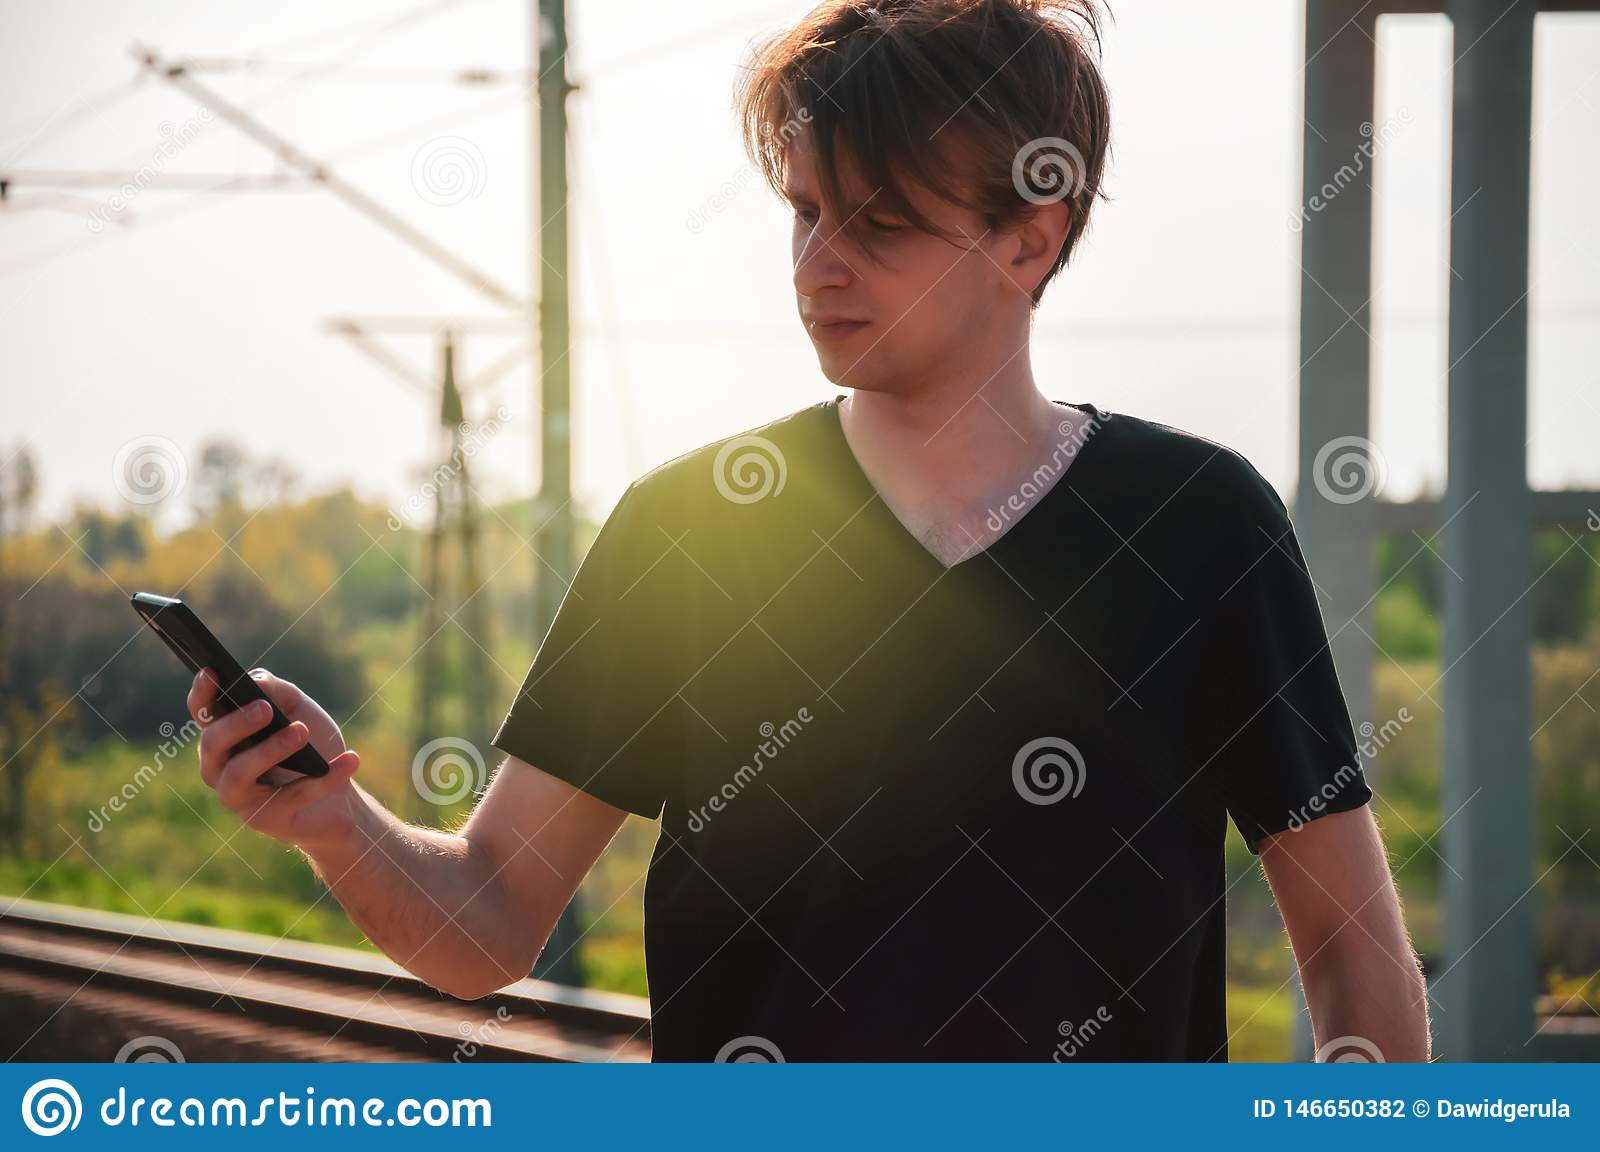 Young traveller man talking through the phone at the railway station during hot summer weather, making gestures while talking